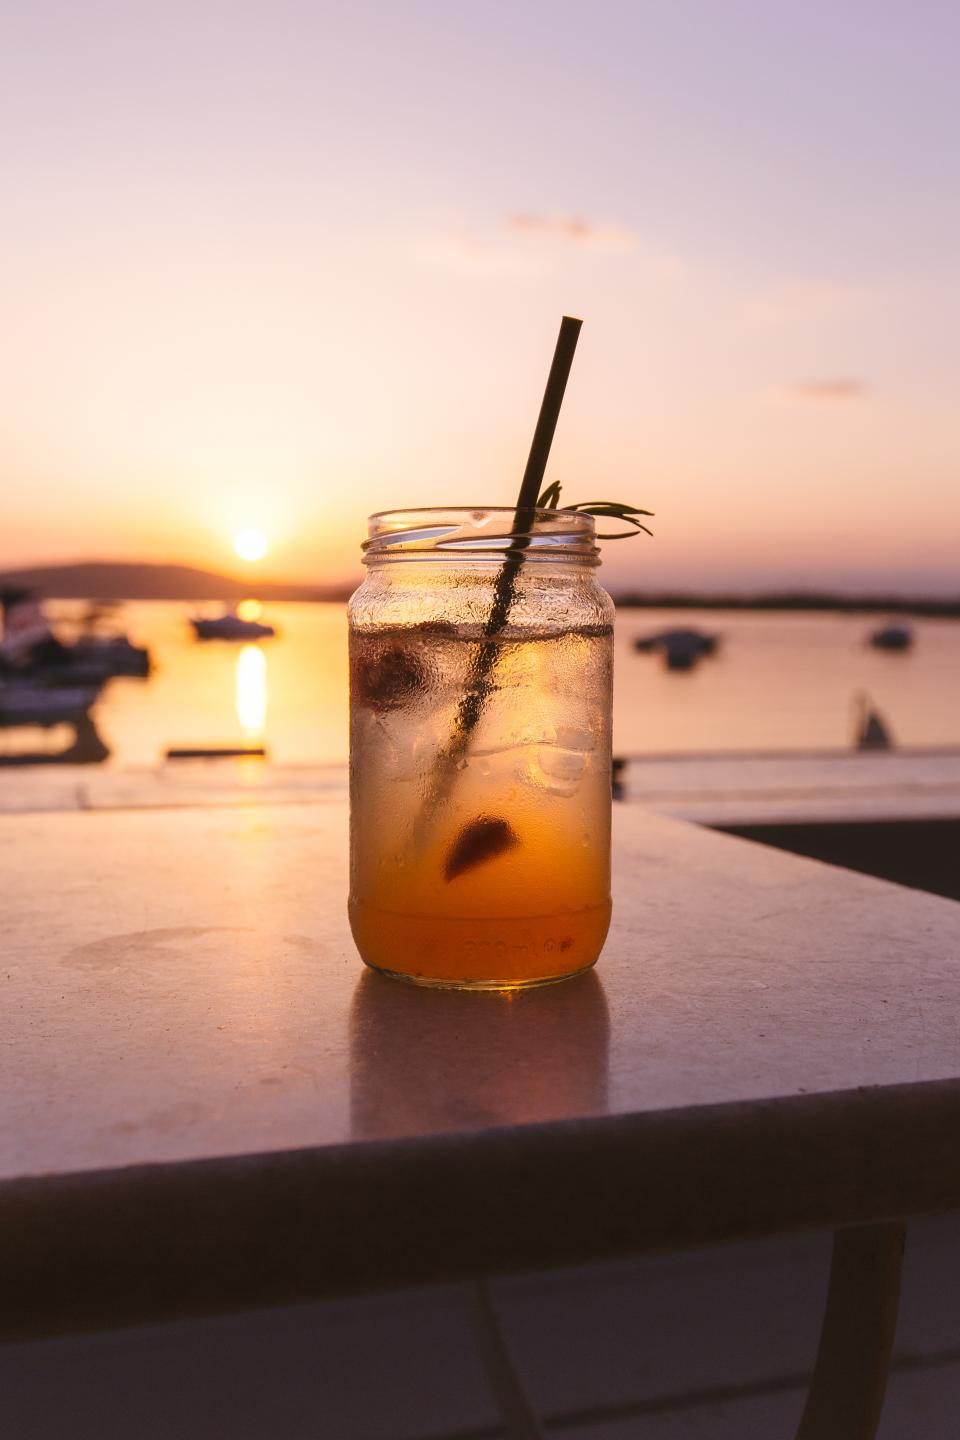 drink cold beverage glass jar straw lemon iced tea sunset sunrise